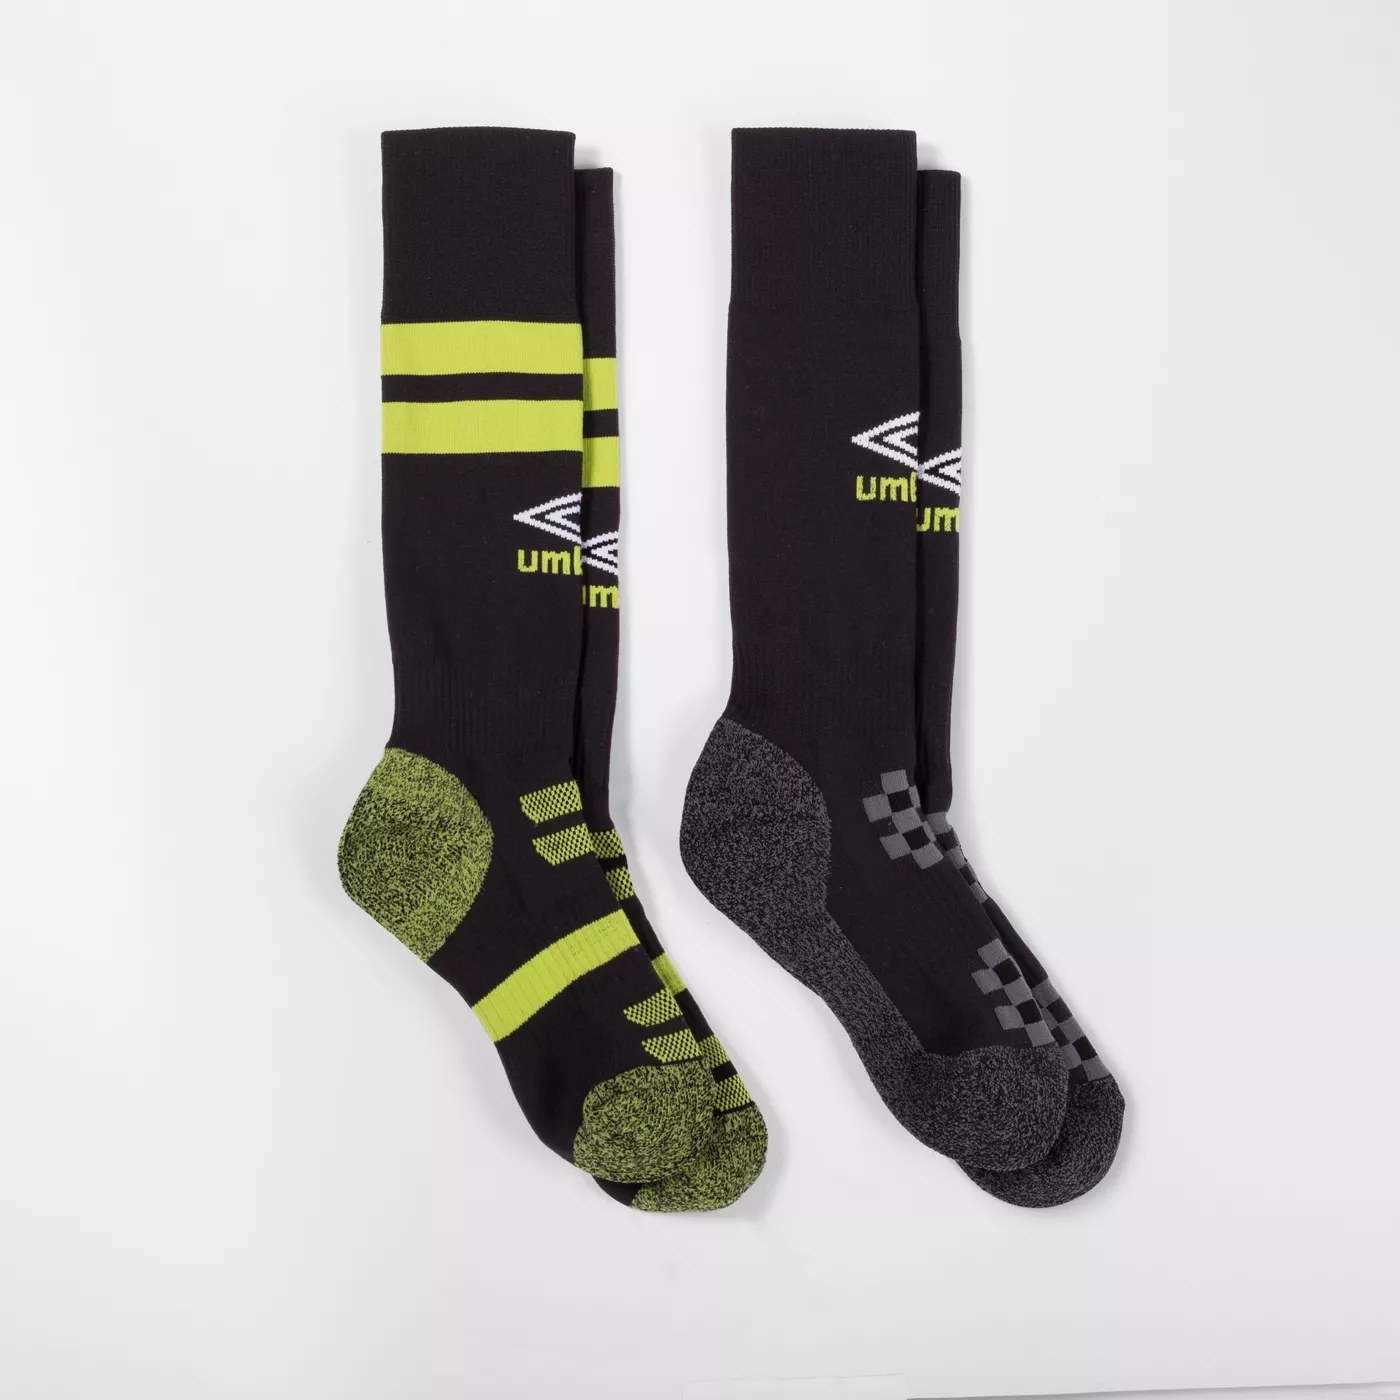 A pair of black and gray Umbro socks and a pair of black and green Umbro socks